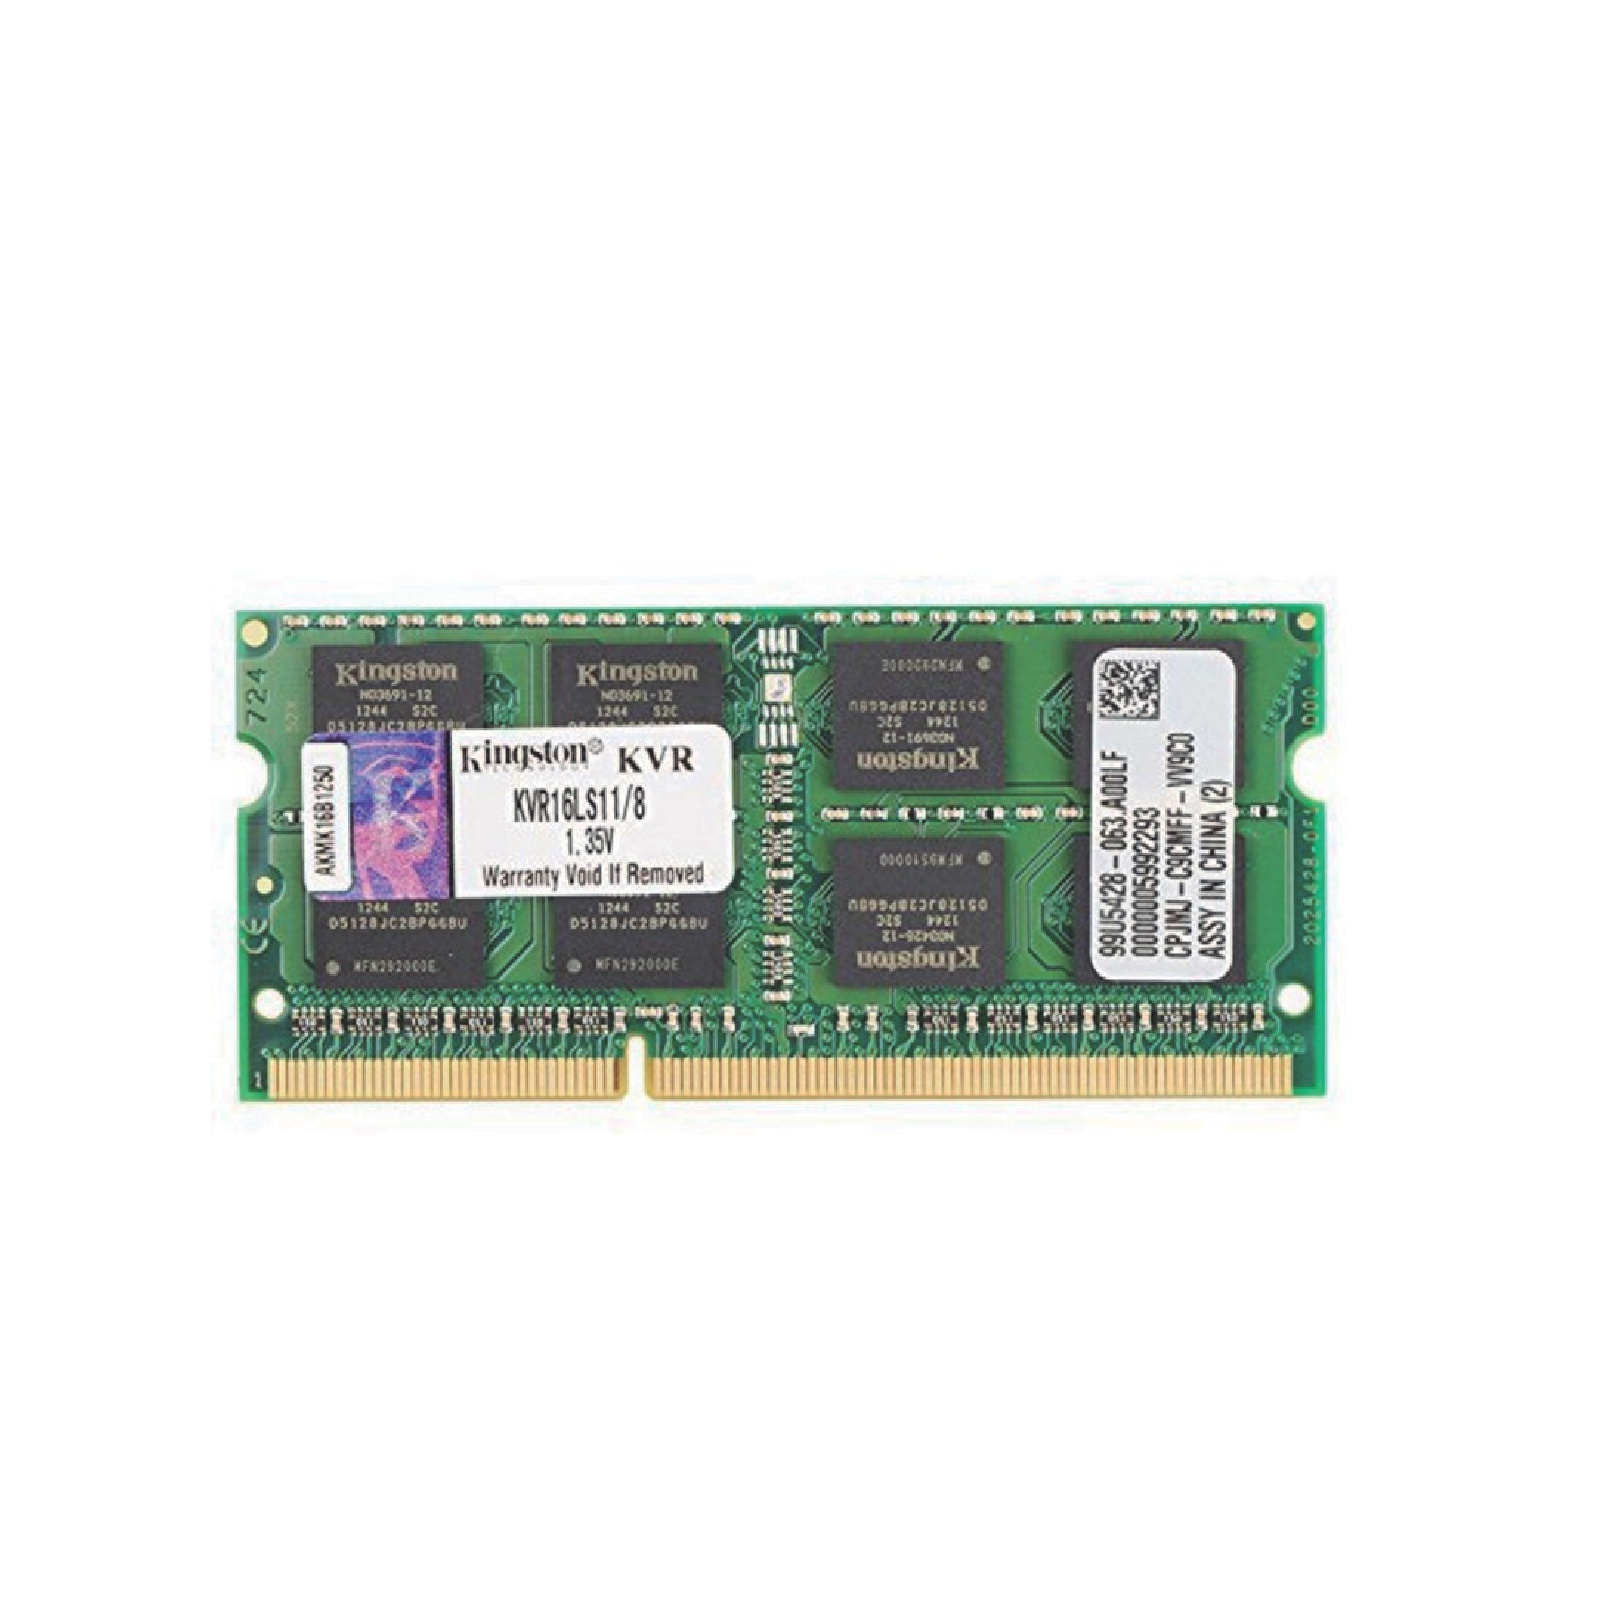 SODDR3 8GB 1600 Mhz Kingston